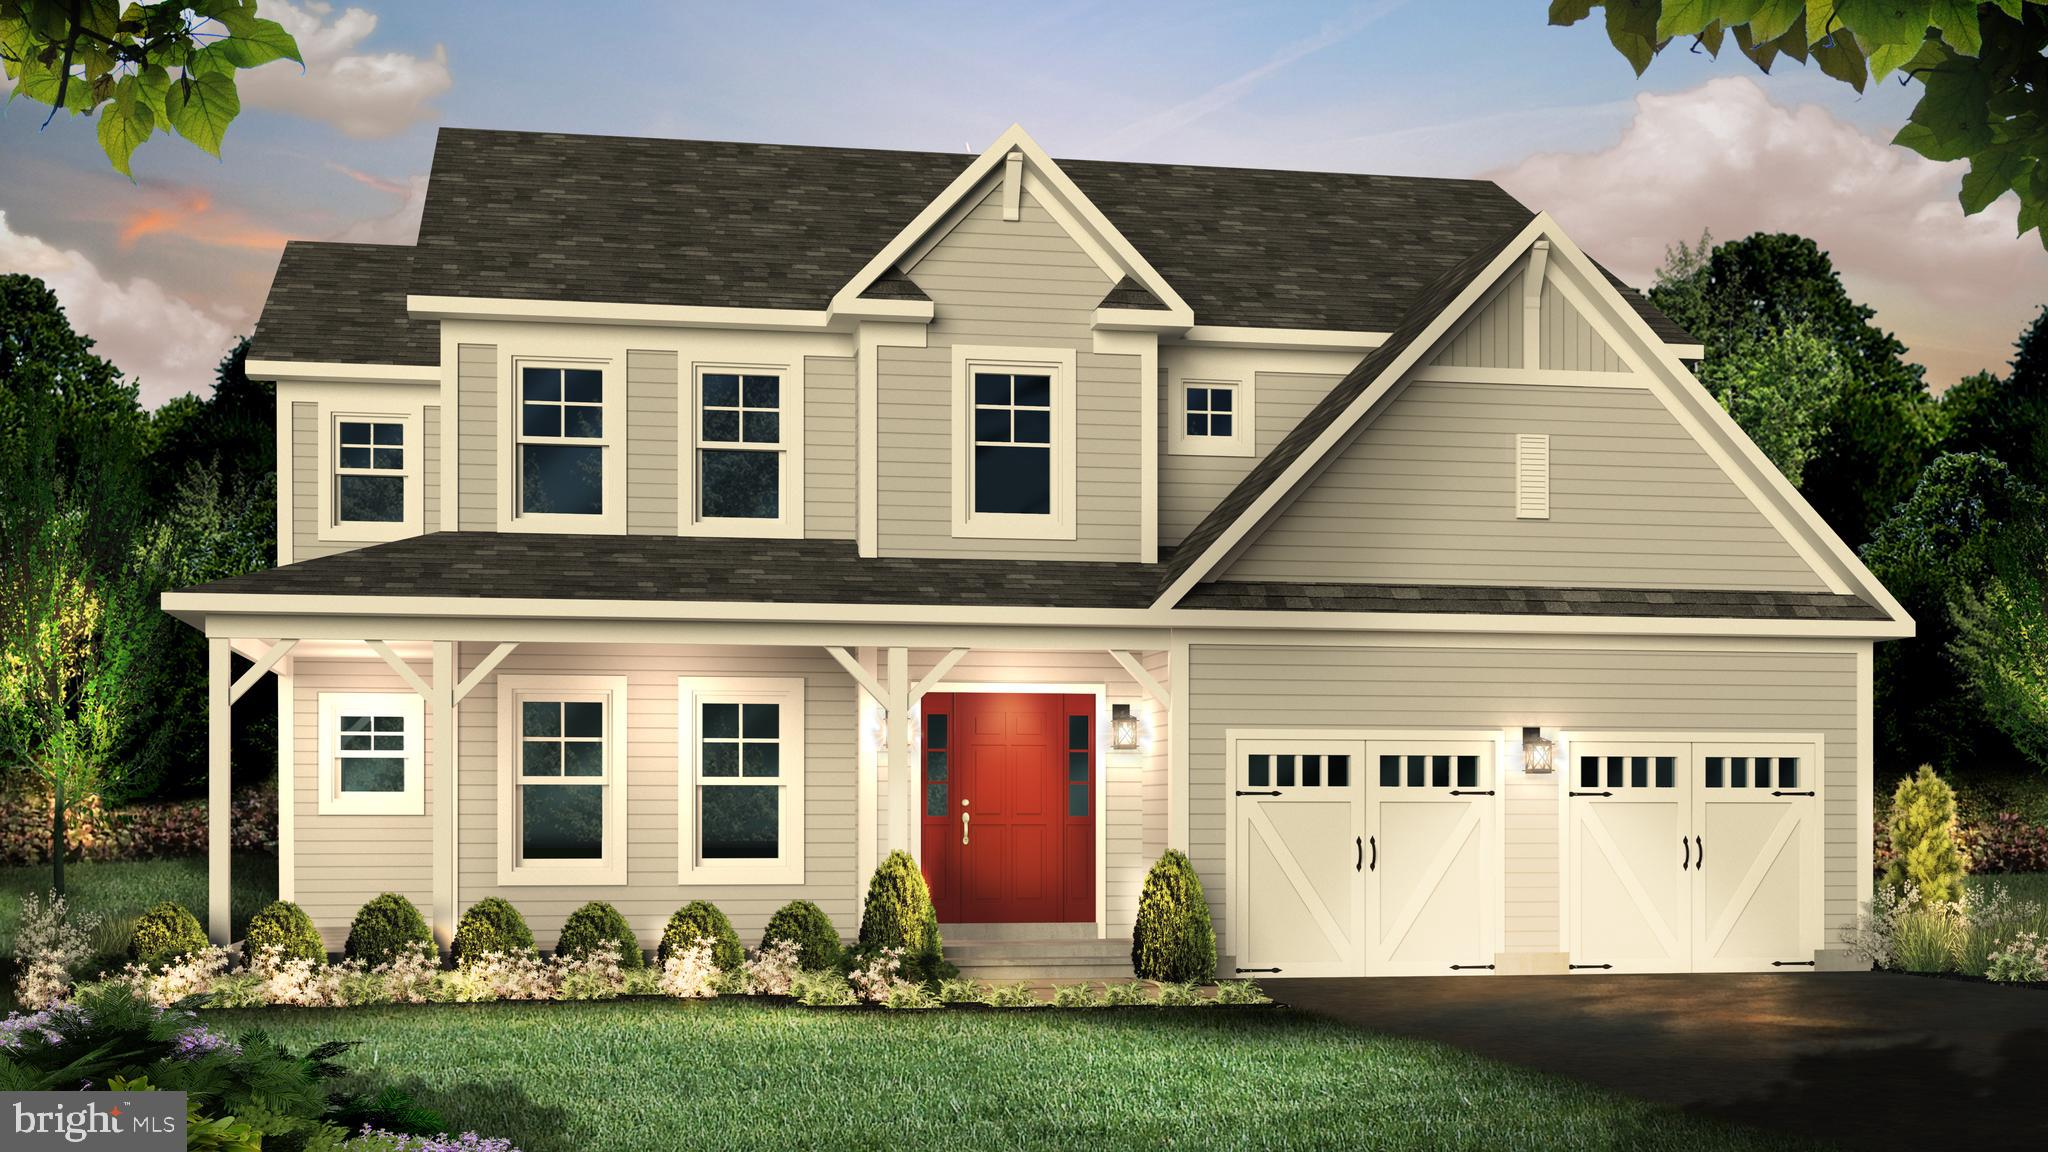 Fairview Model BAYBERRY AVENUE, PENNSBURG, PA 18073